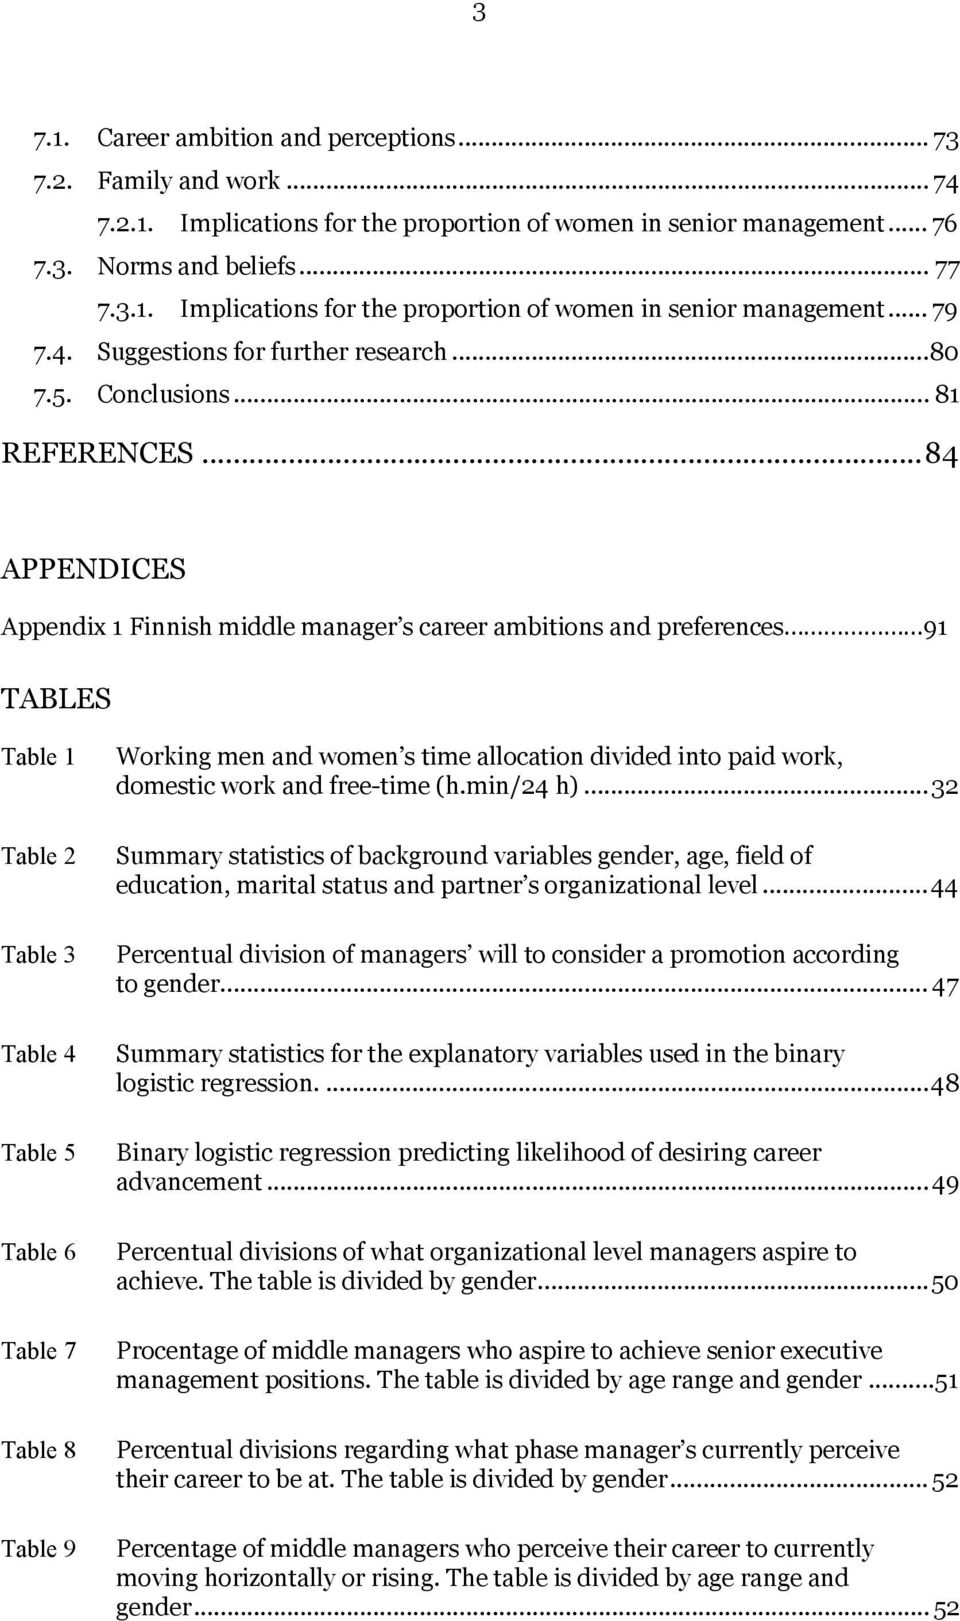 why are so few women promoted into top management positions pdf 84 appendices appendix 1 finnish middle manager s career ambitions and preferences 91 tables